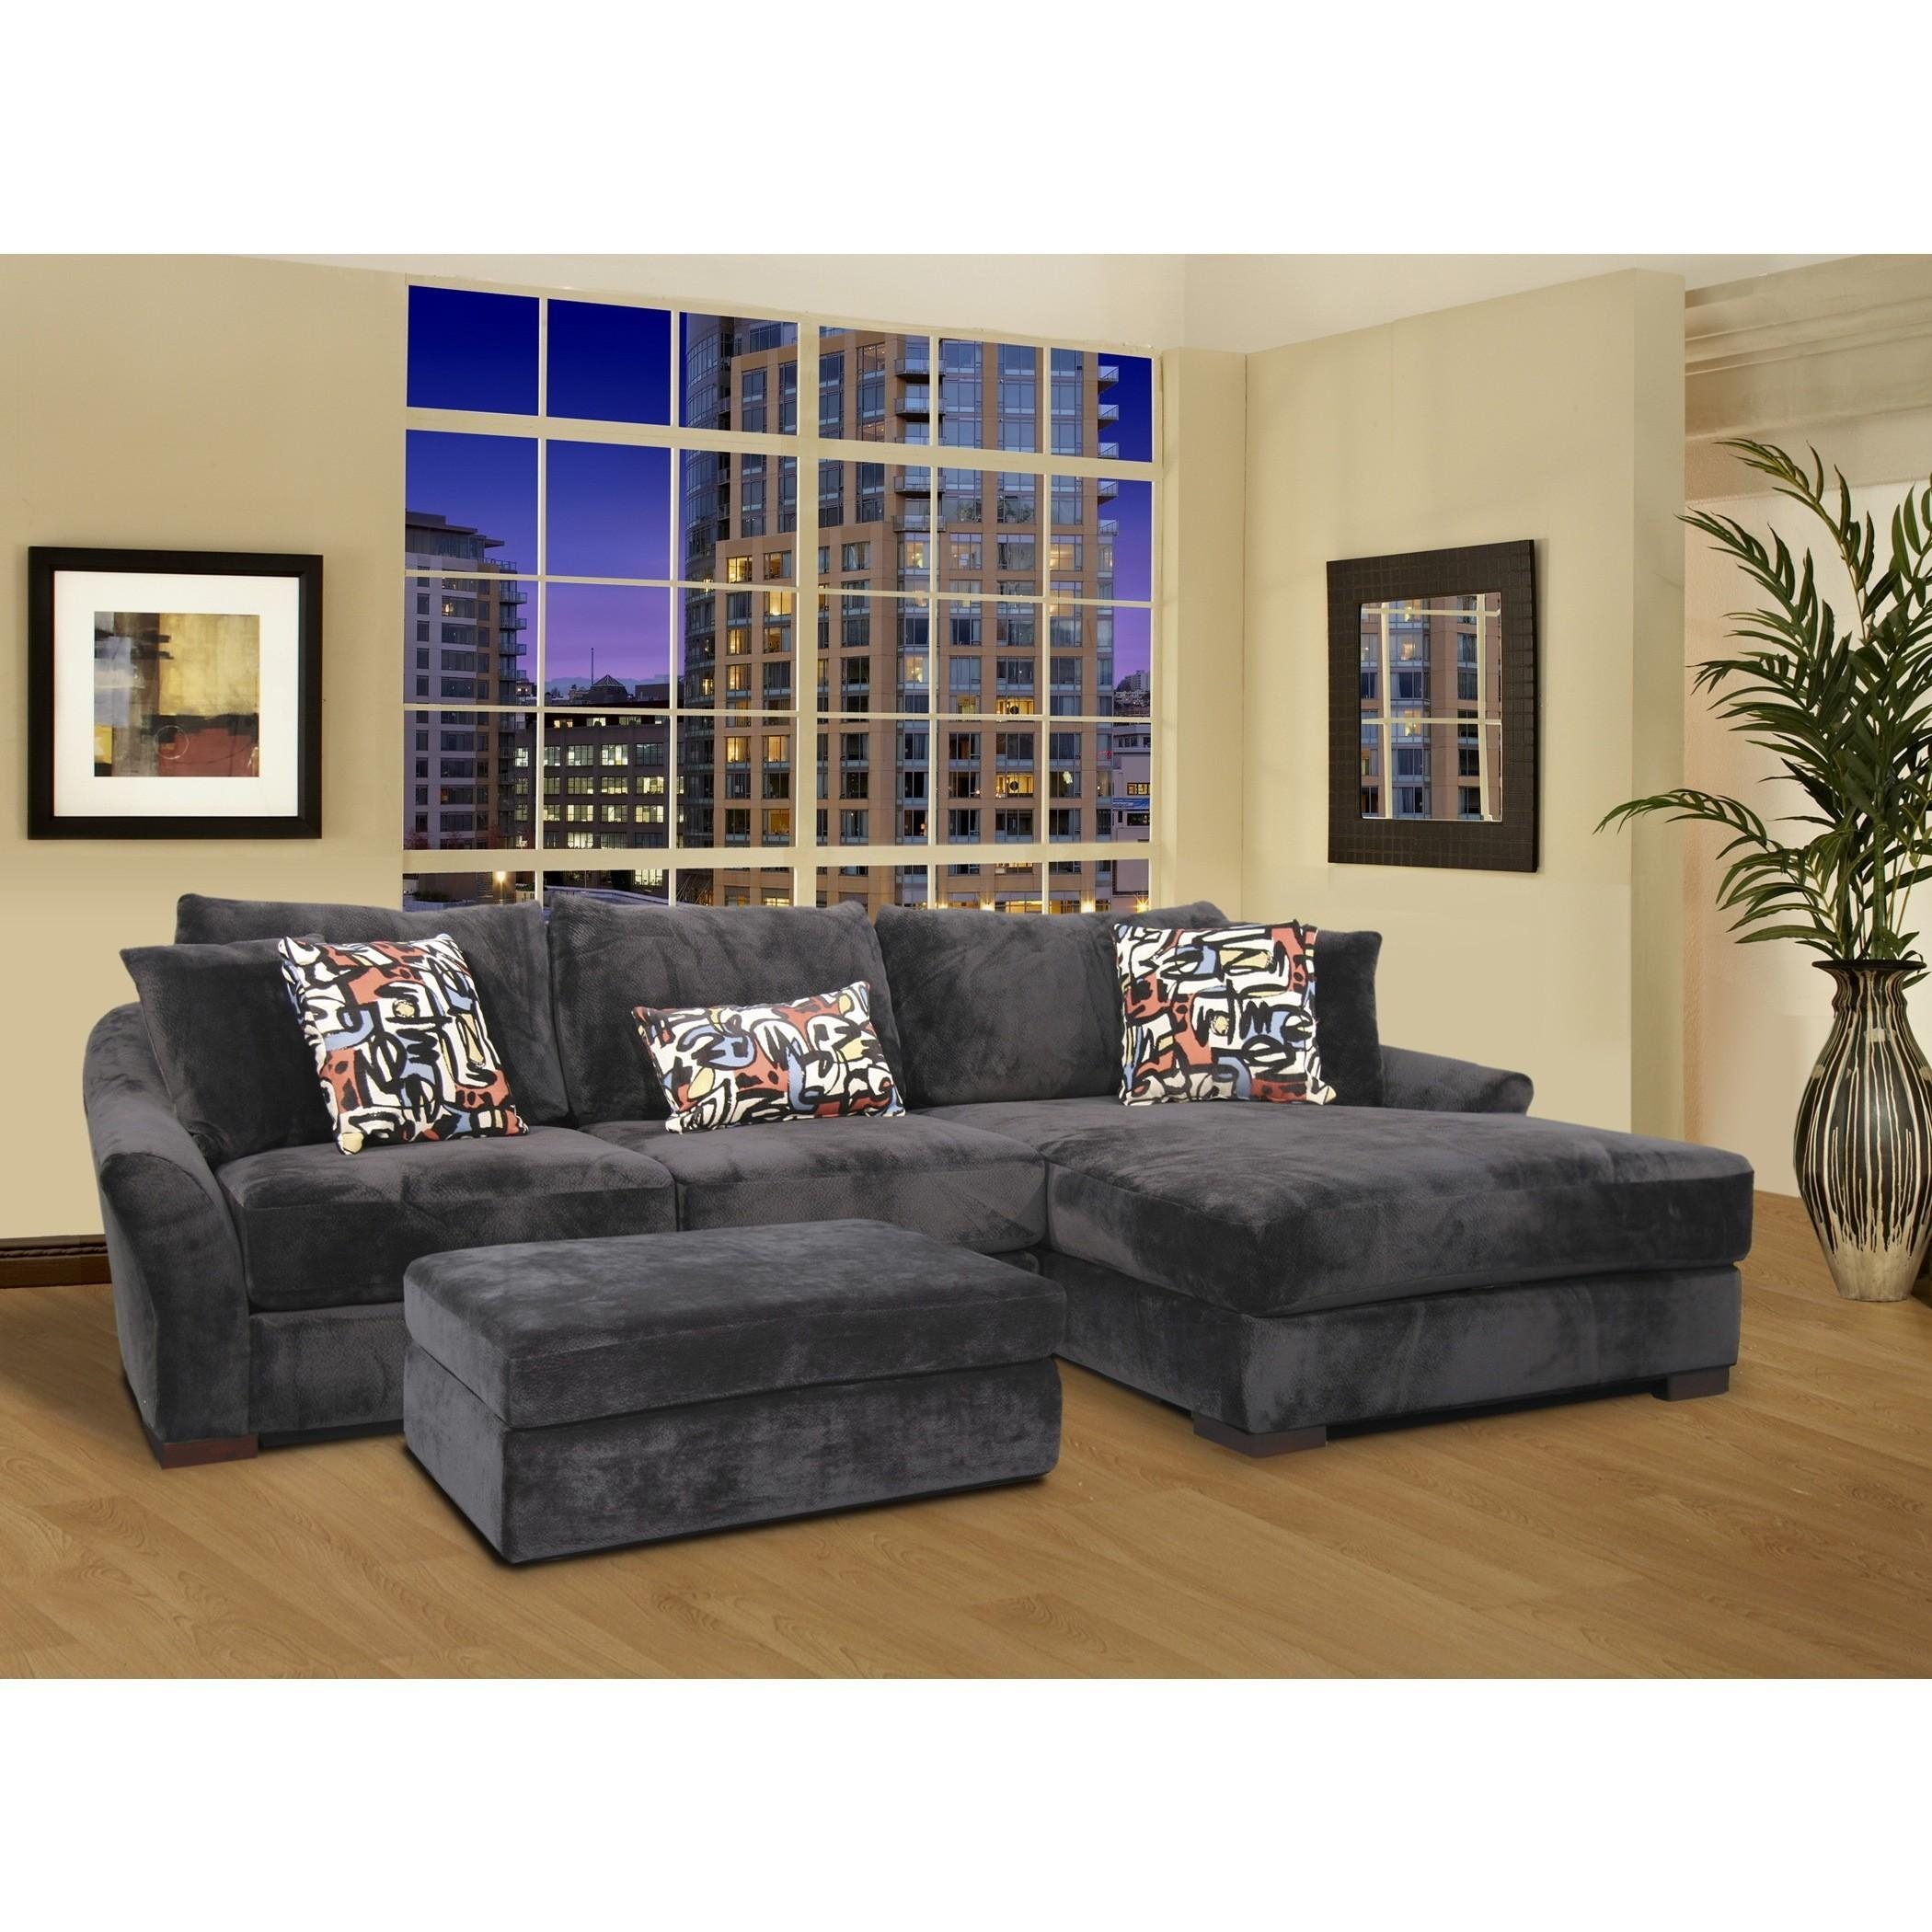 Furniture: Classic And Traditional Style Velvet Sectional Sofa For Within Brown Velvet Sofas (Image 13 of 20)